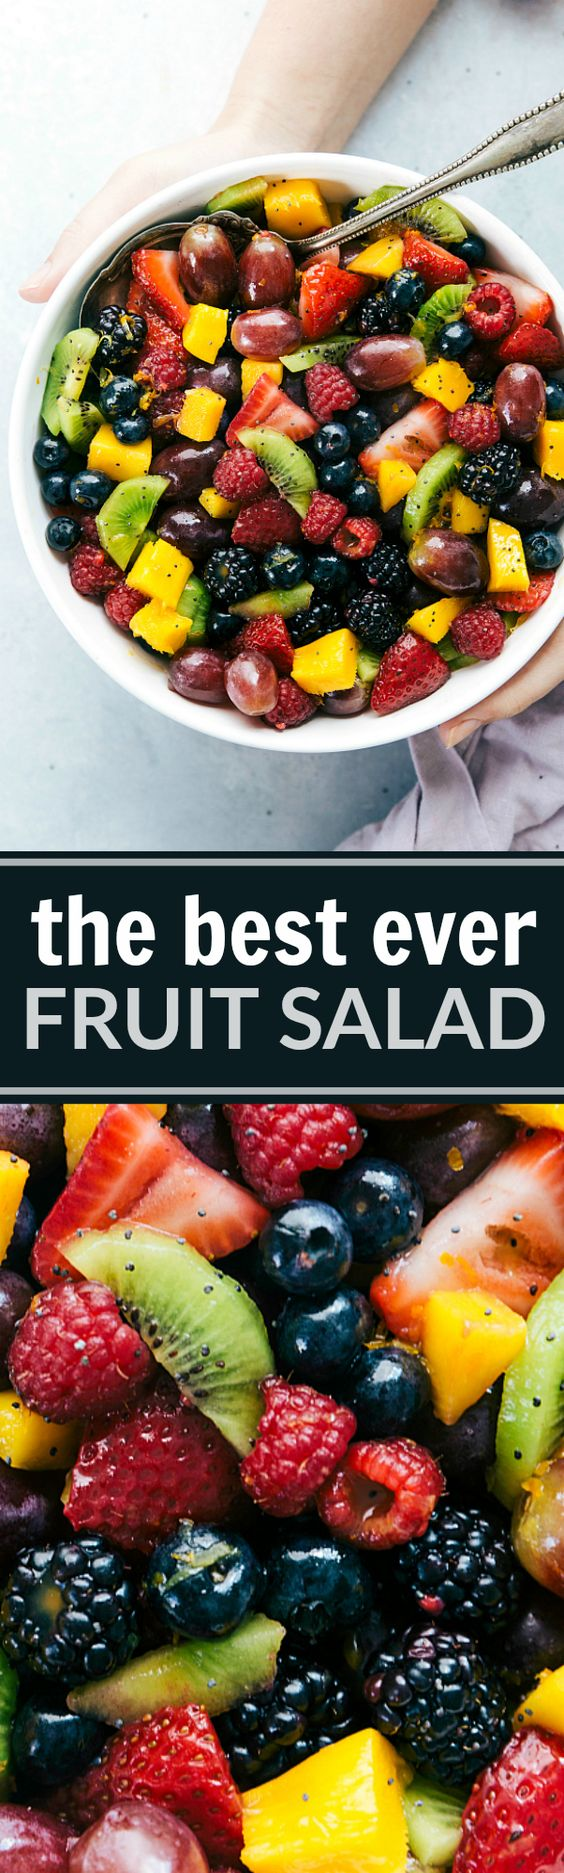 The Best Ever Fruit Salad.